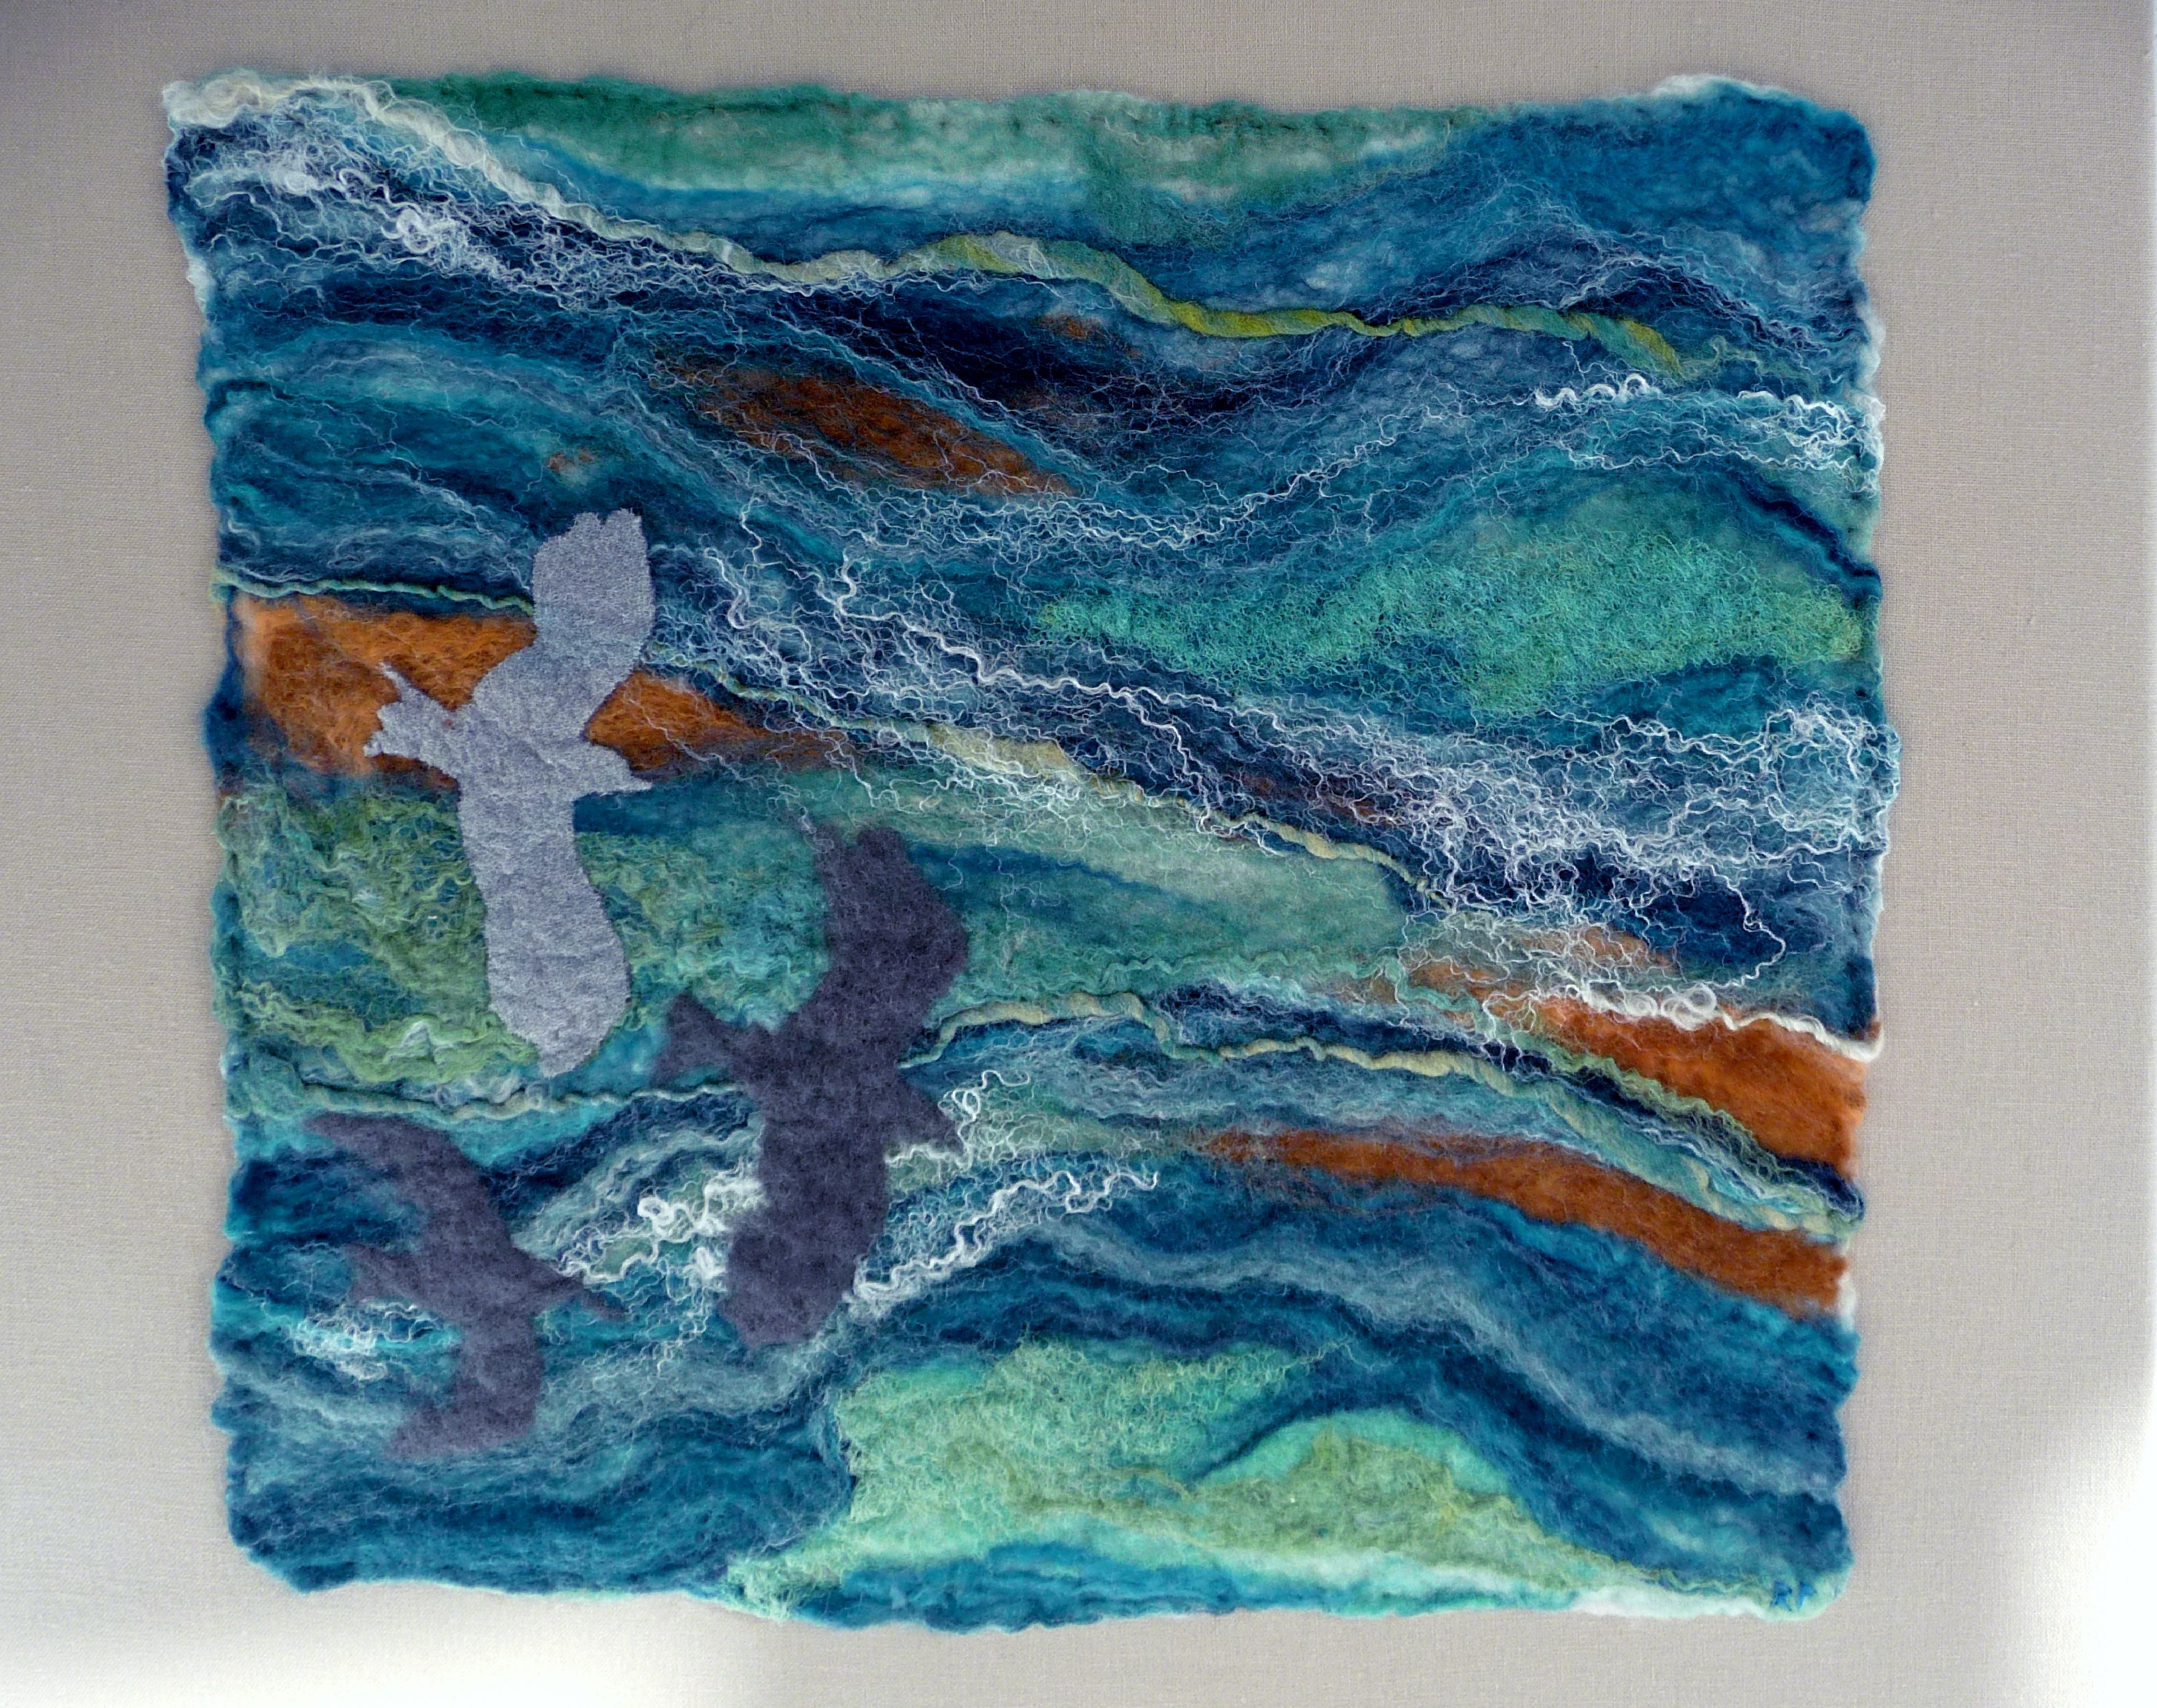 OVER AZURE SEAS 2 by Rosey  Paul, hand-felted textile